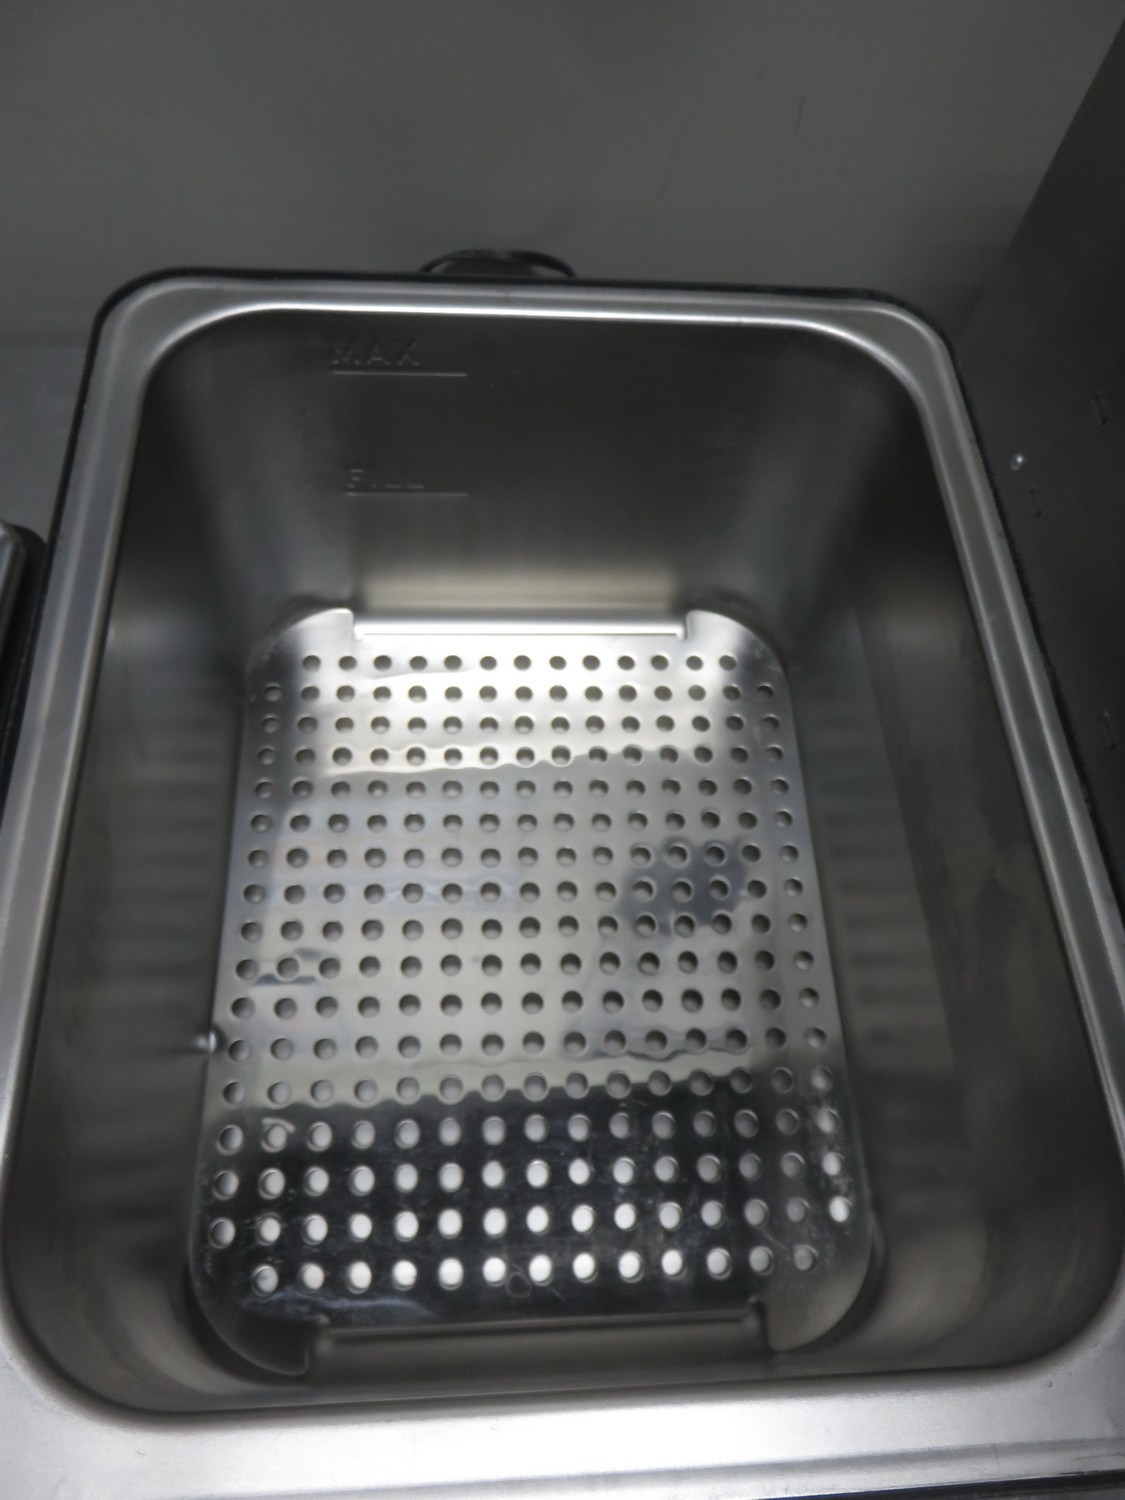 EADES SOUSVIDE SVS10LS SUPREME WATER OVEN - Image 2 of 2